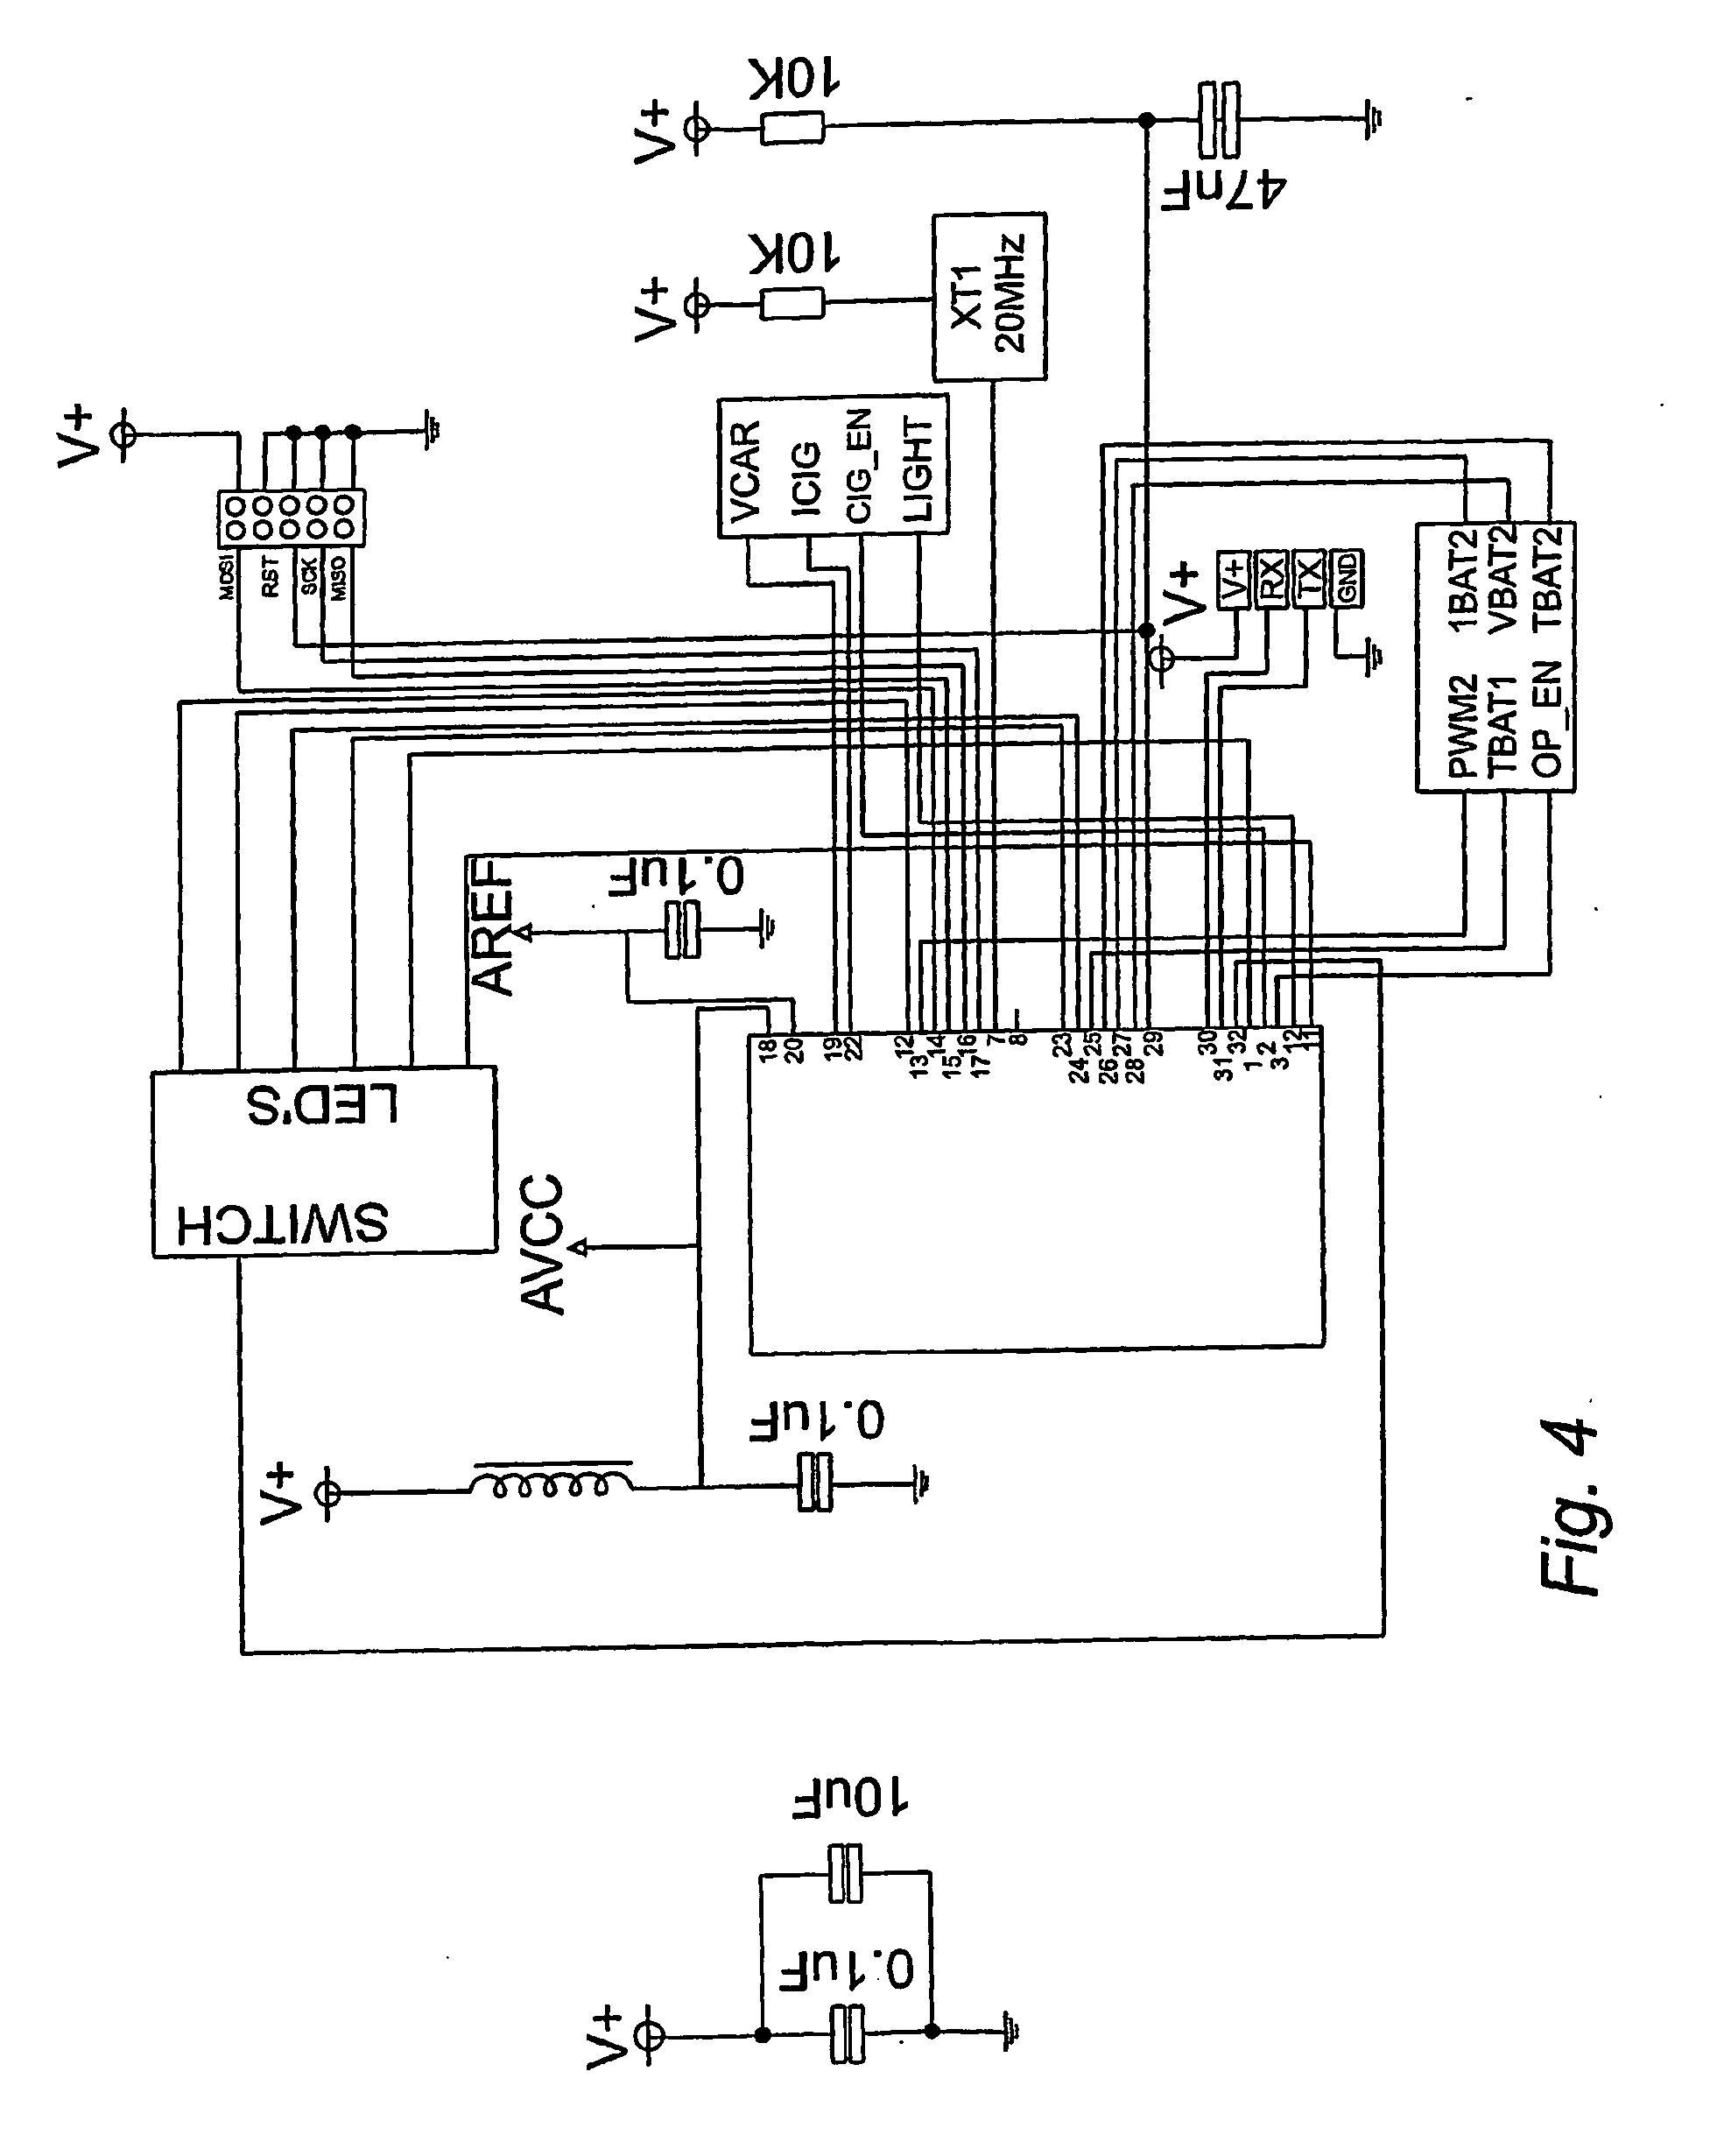 US20100213889A1 20100826 D00002 yamaha golf cart electrical diagram yamaha g1 golf cart wiring Potentiometer Motor Wiring Diagram at aneh.co